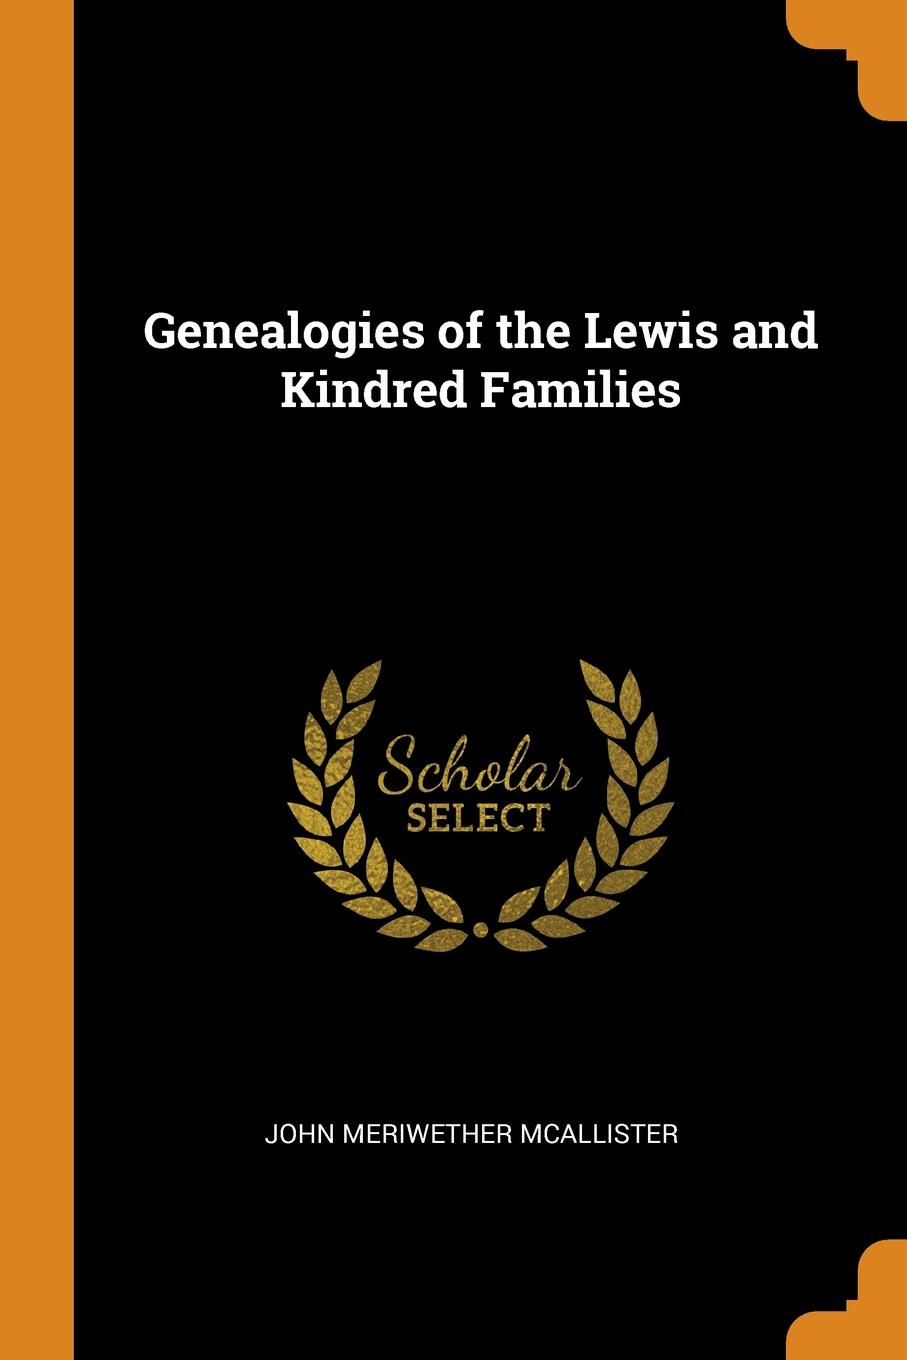 John Meriwether McAllister Genealogies of the Lewis and Kindred Families